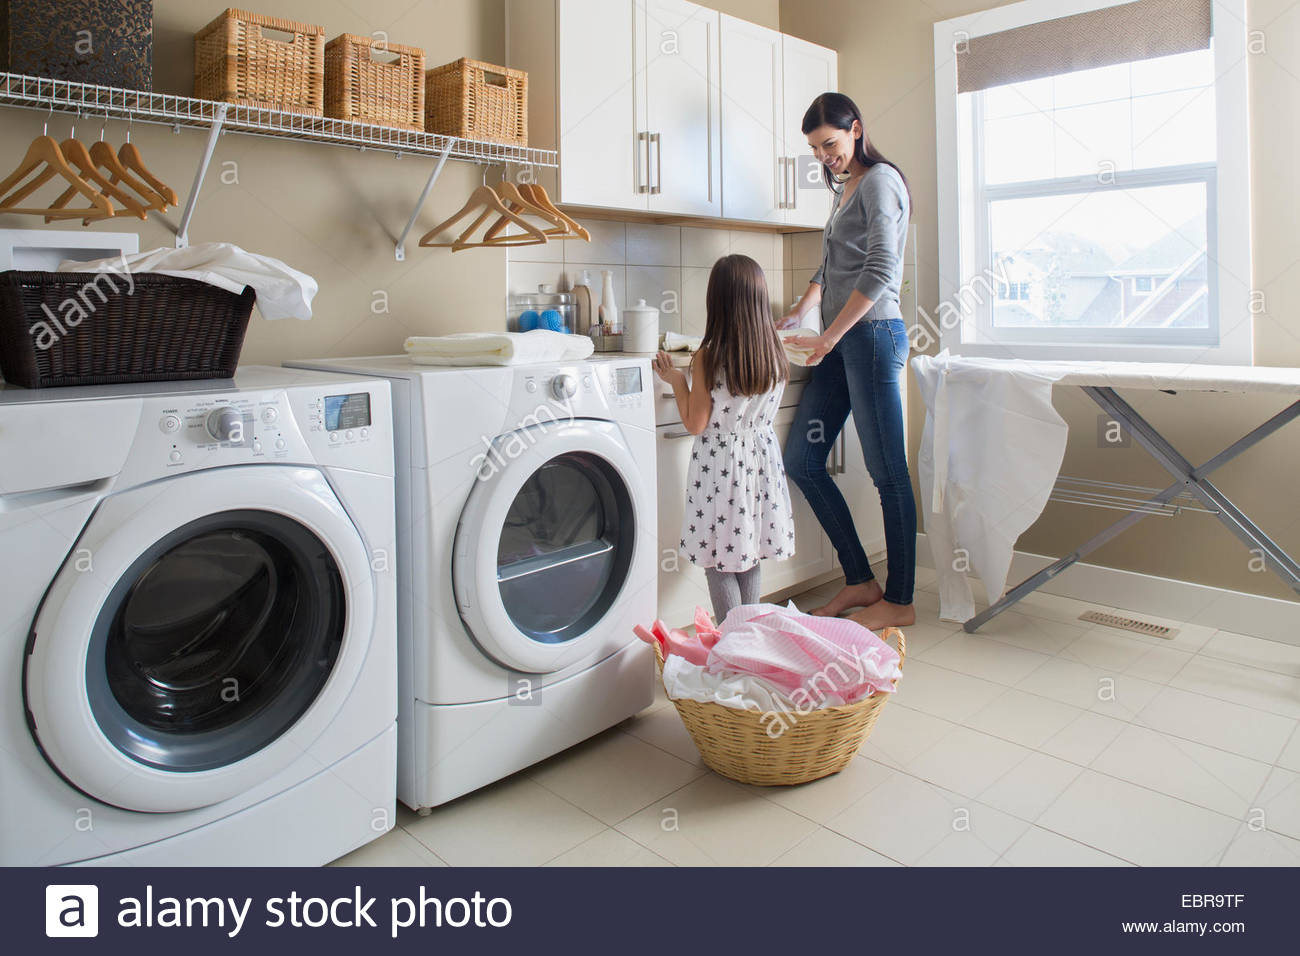 Mother and daughter in laundry room - Stock Image